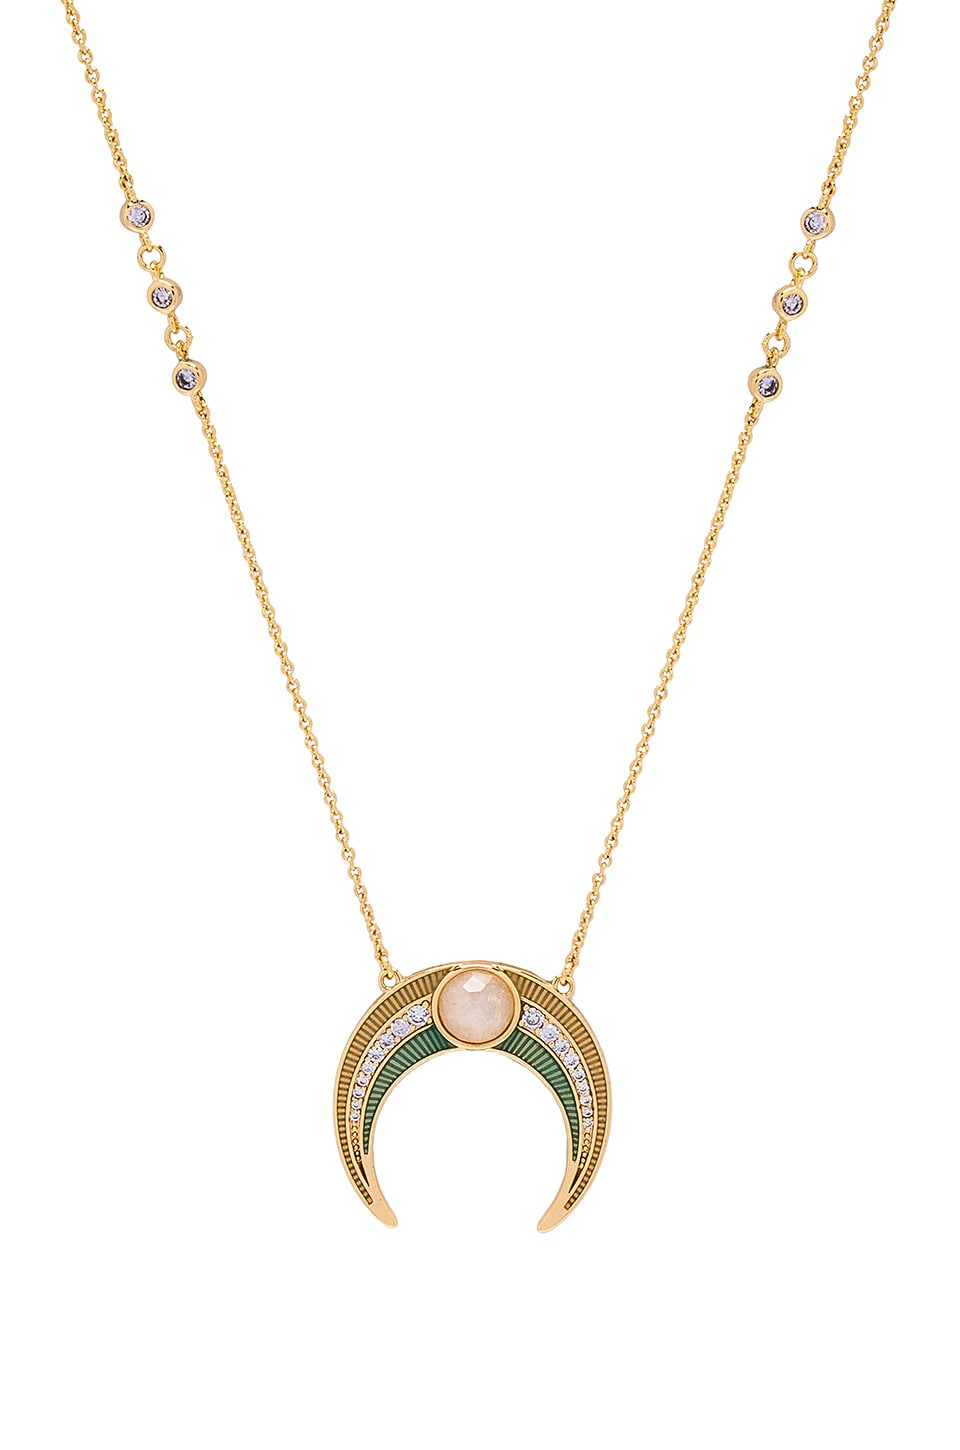 Gemstone Crescent Moonstone Necklace